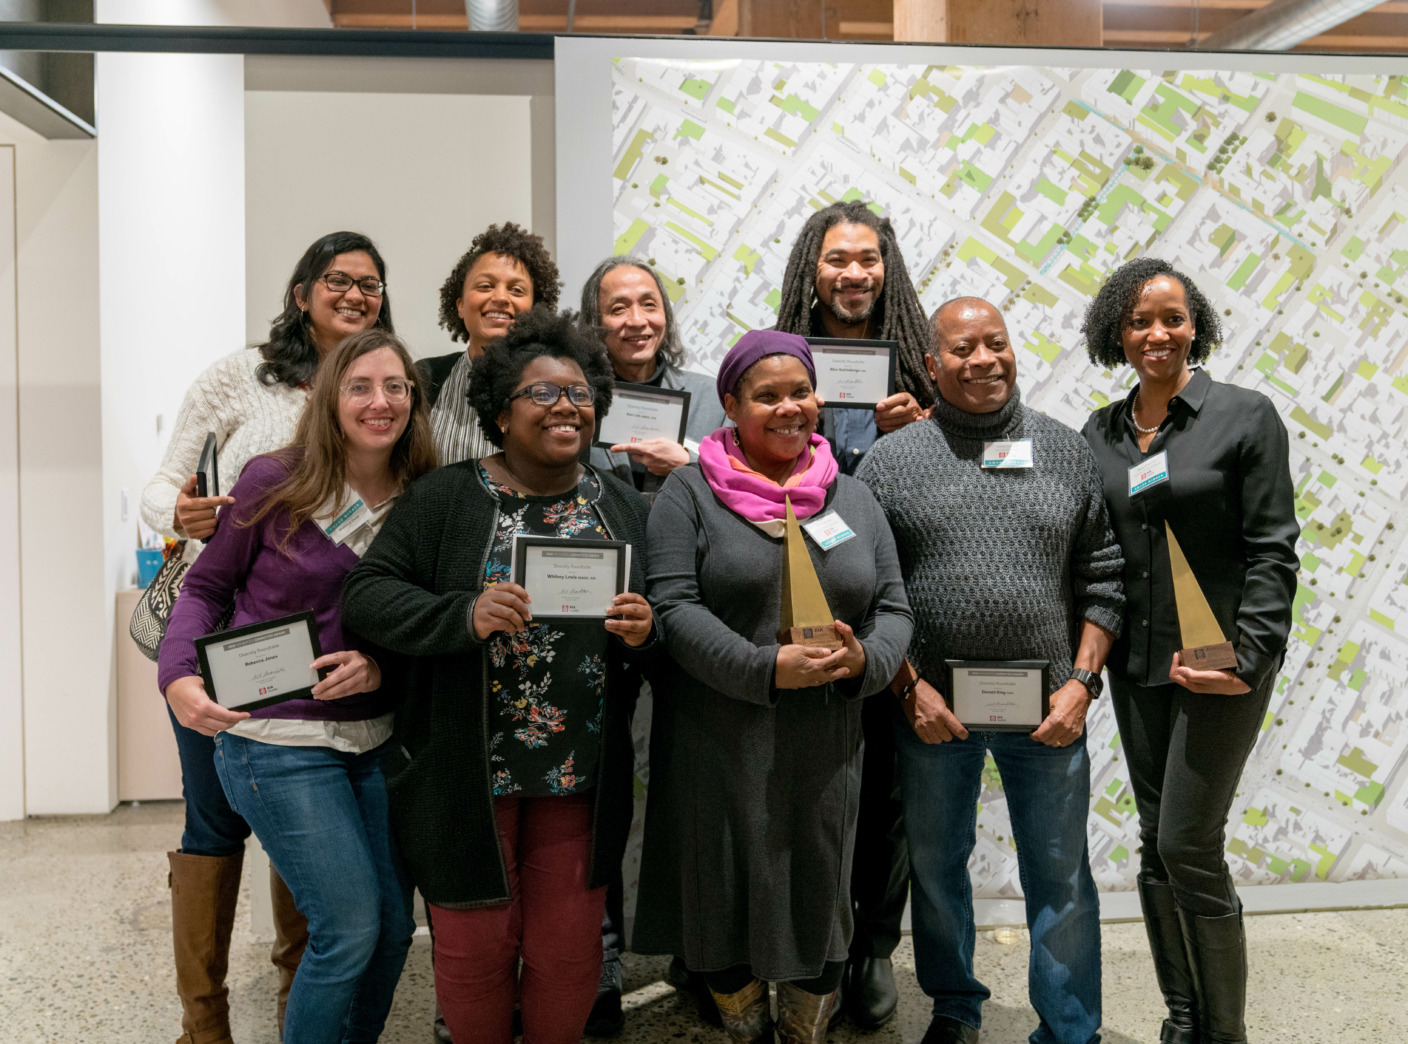 Diversity Roundtable receives the AIA Seattle Committee Award at the 2018 Parti